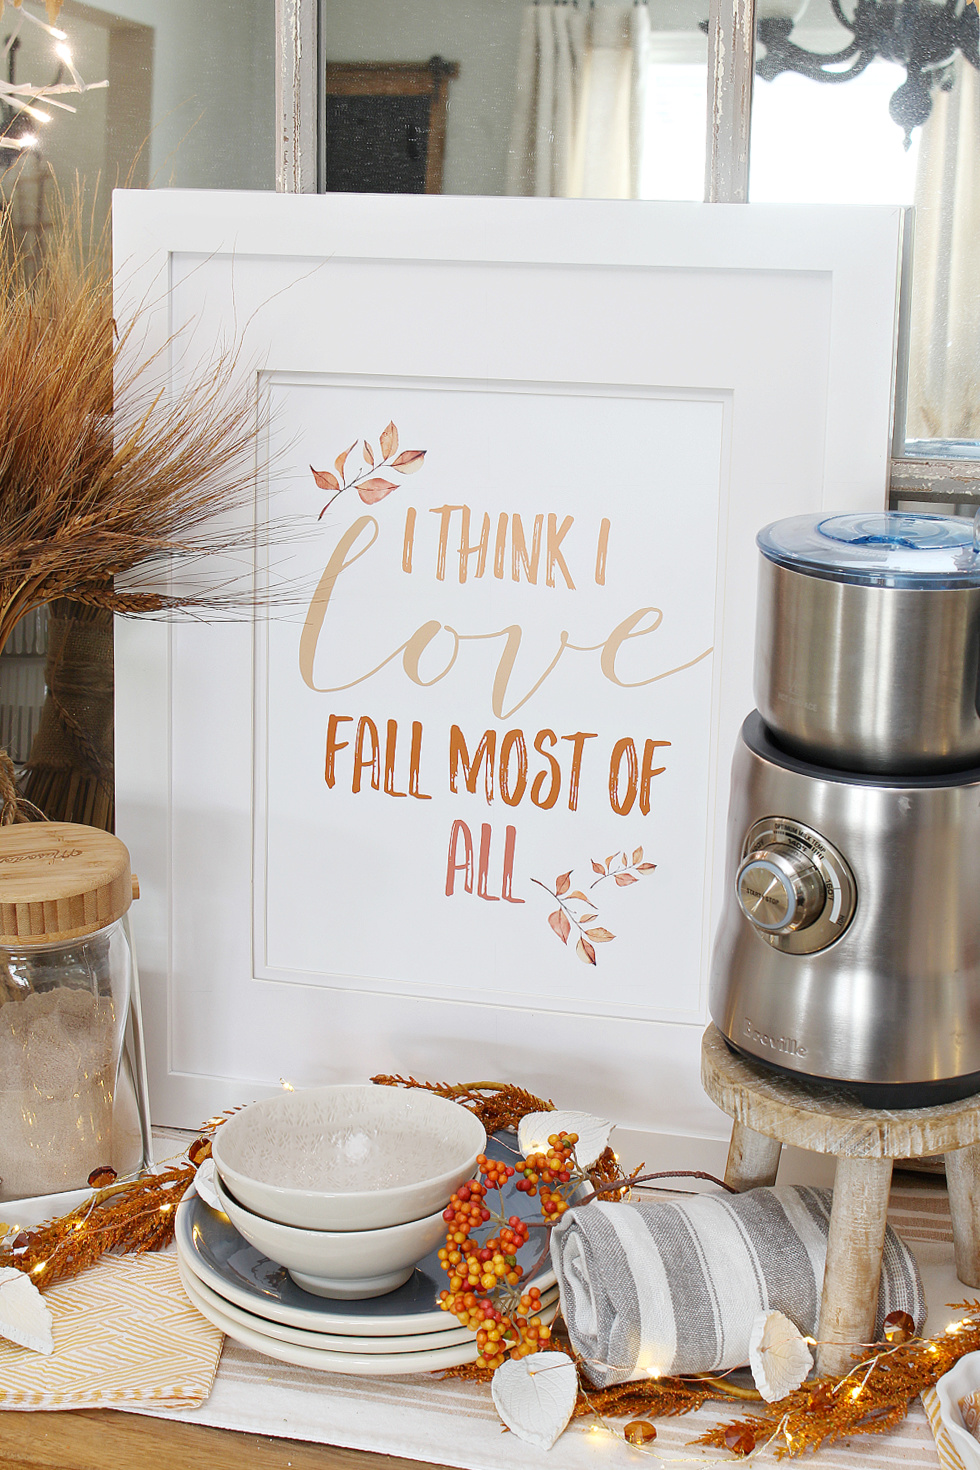 I Think I Love Fall Most of All free printable in a frame.